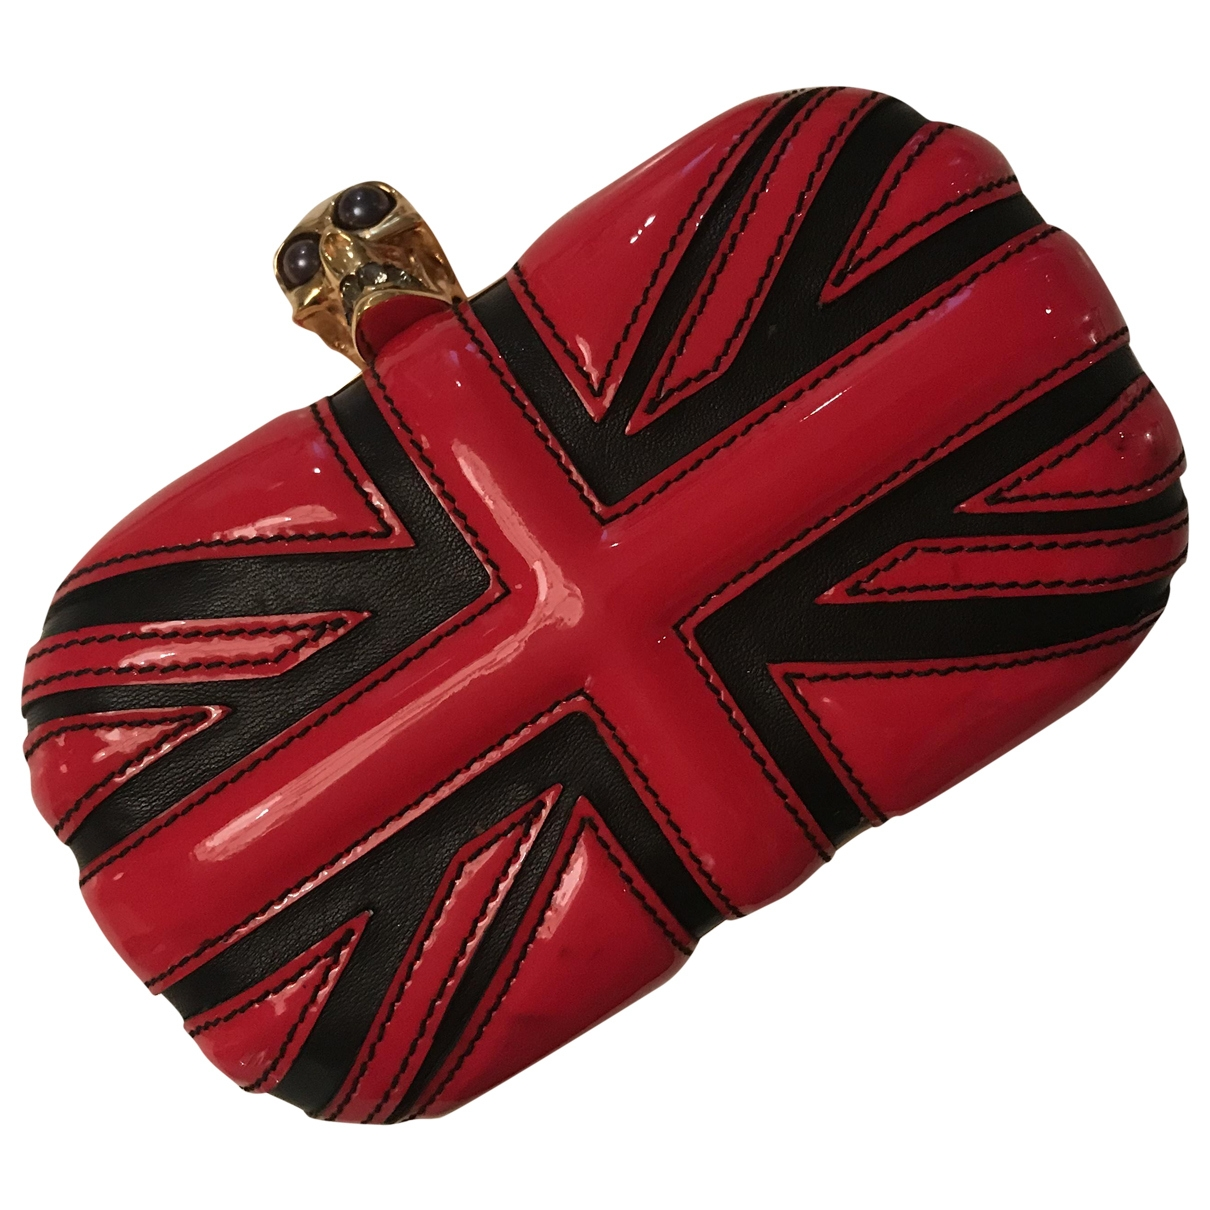 Alexander Mcqueen Skull Red Patent leather Clutch bag for Women \N